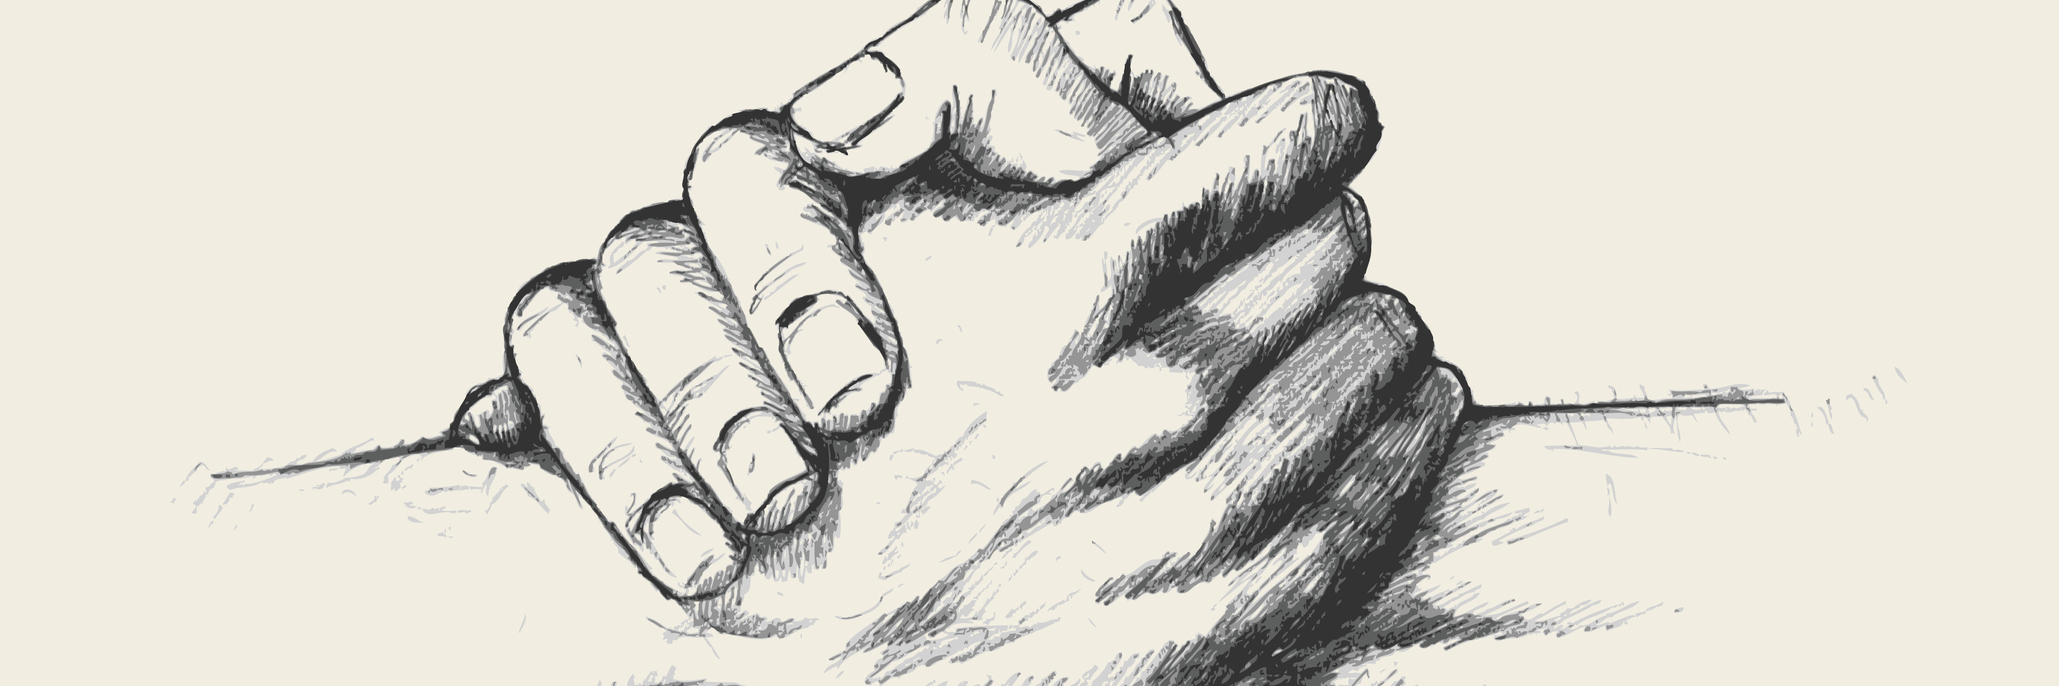 Pencil sketch of two hands holding each other